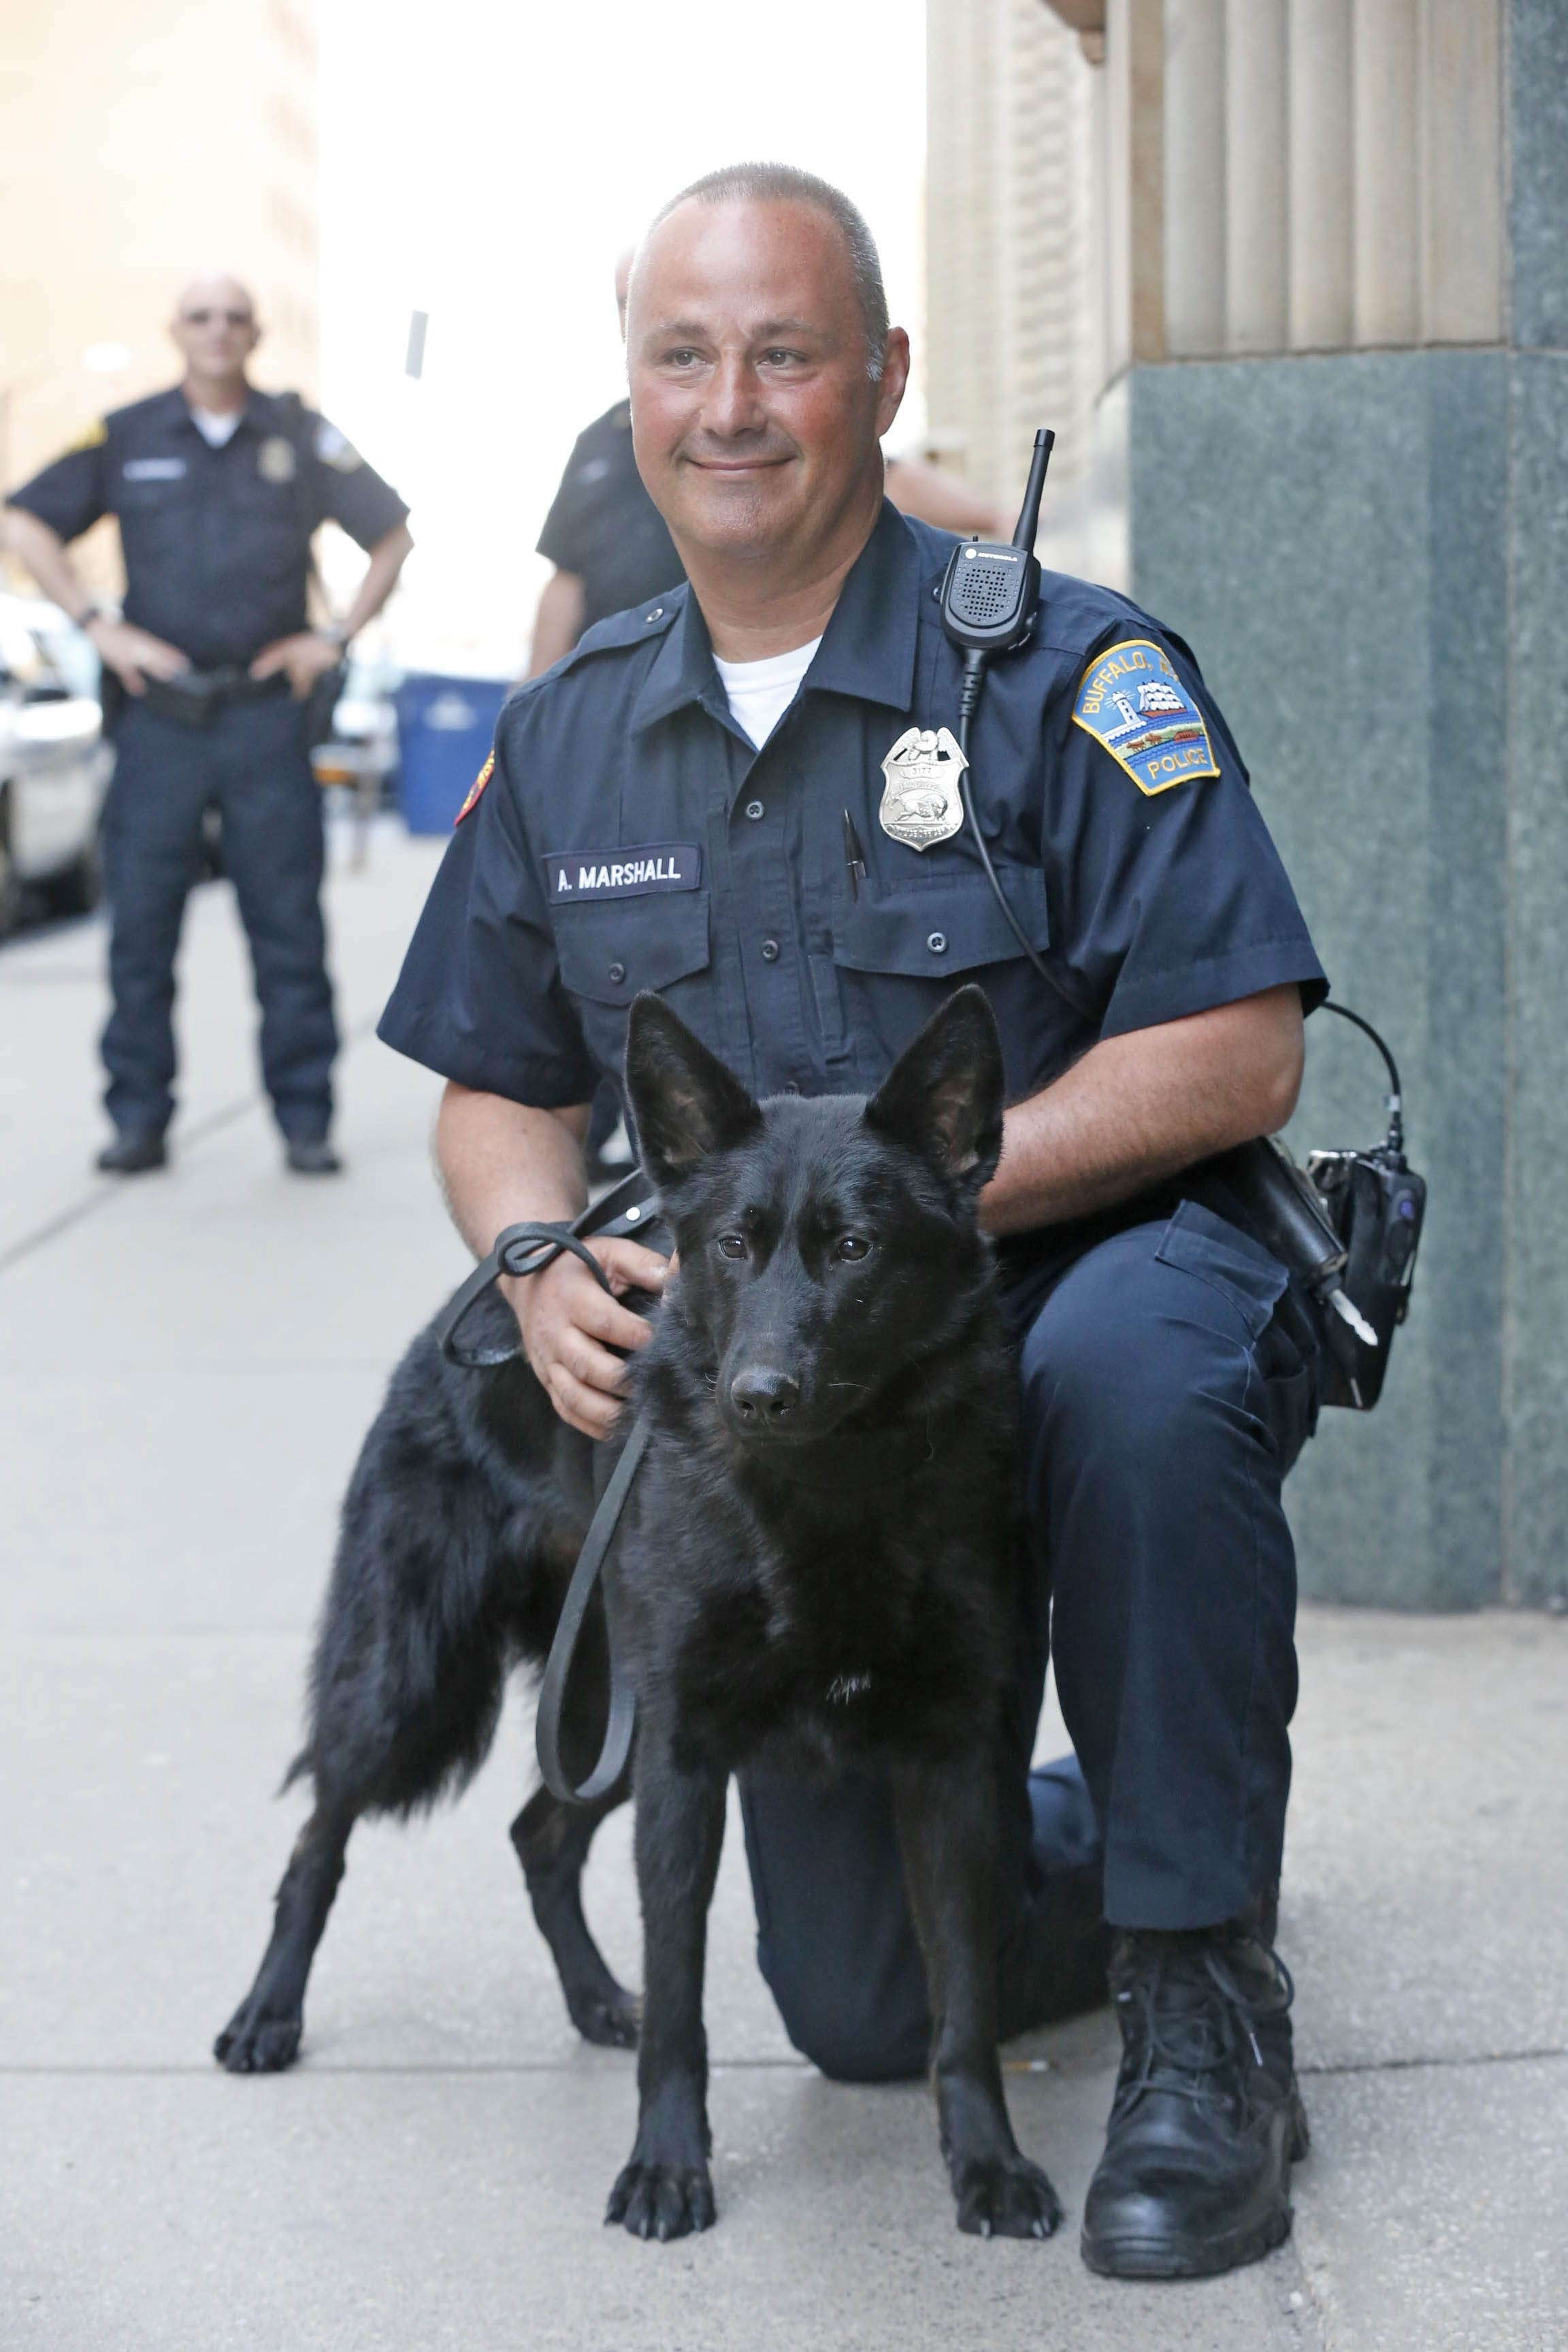 Officer Anthony Marshall introduces his new partner, Georgie, at Buffalo Police Department Headquarters on Monday. The Hyde family donated funding for the K-9 dog's training.